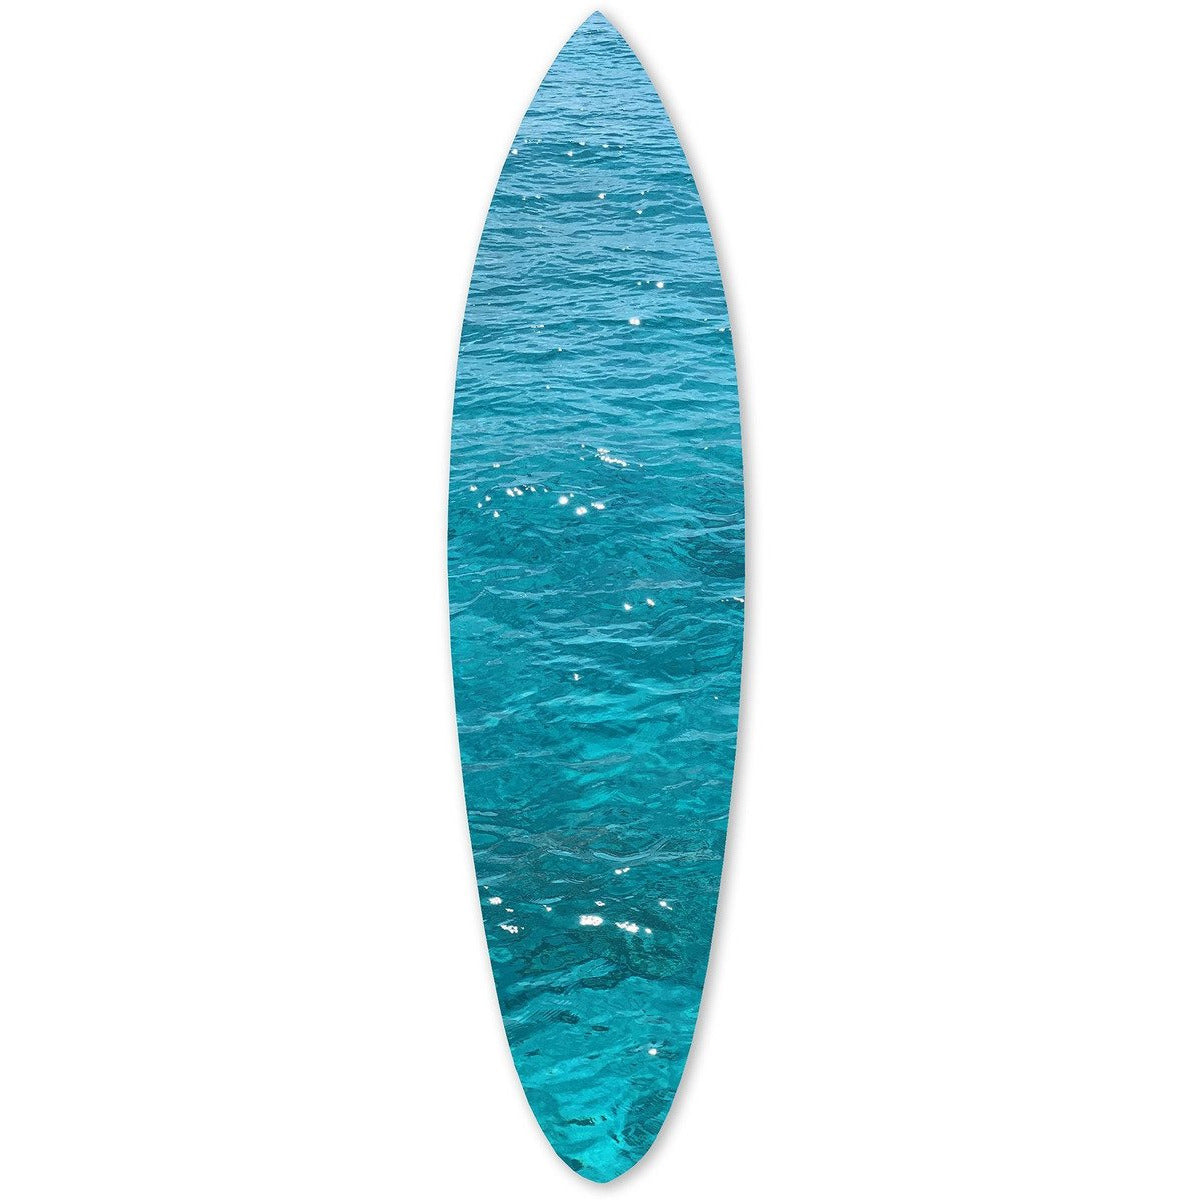 Canvas Art - Wooden Surfboard Wall Art With Ocean Print, Glossy Blue